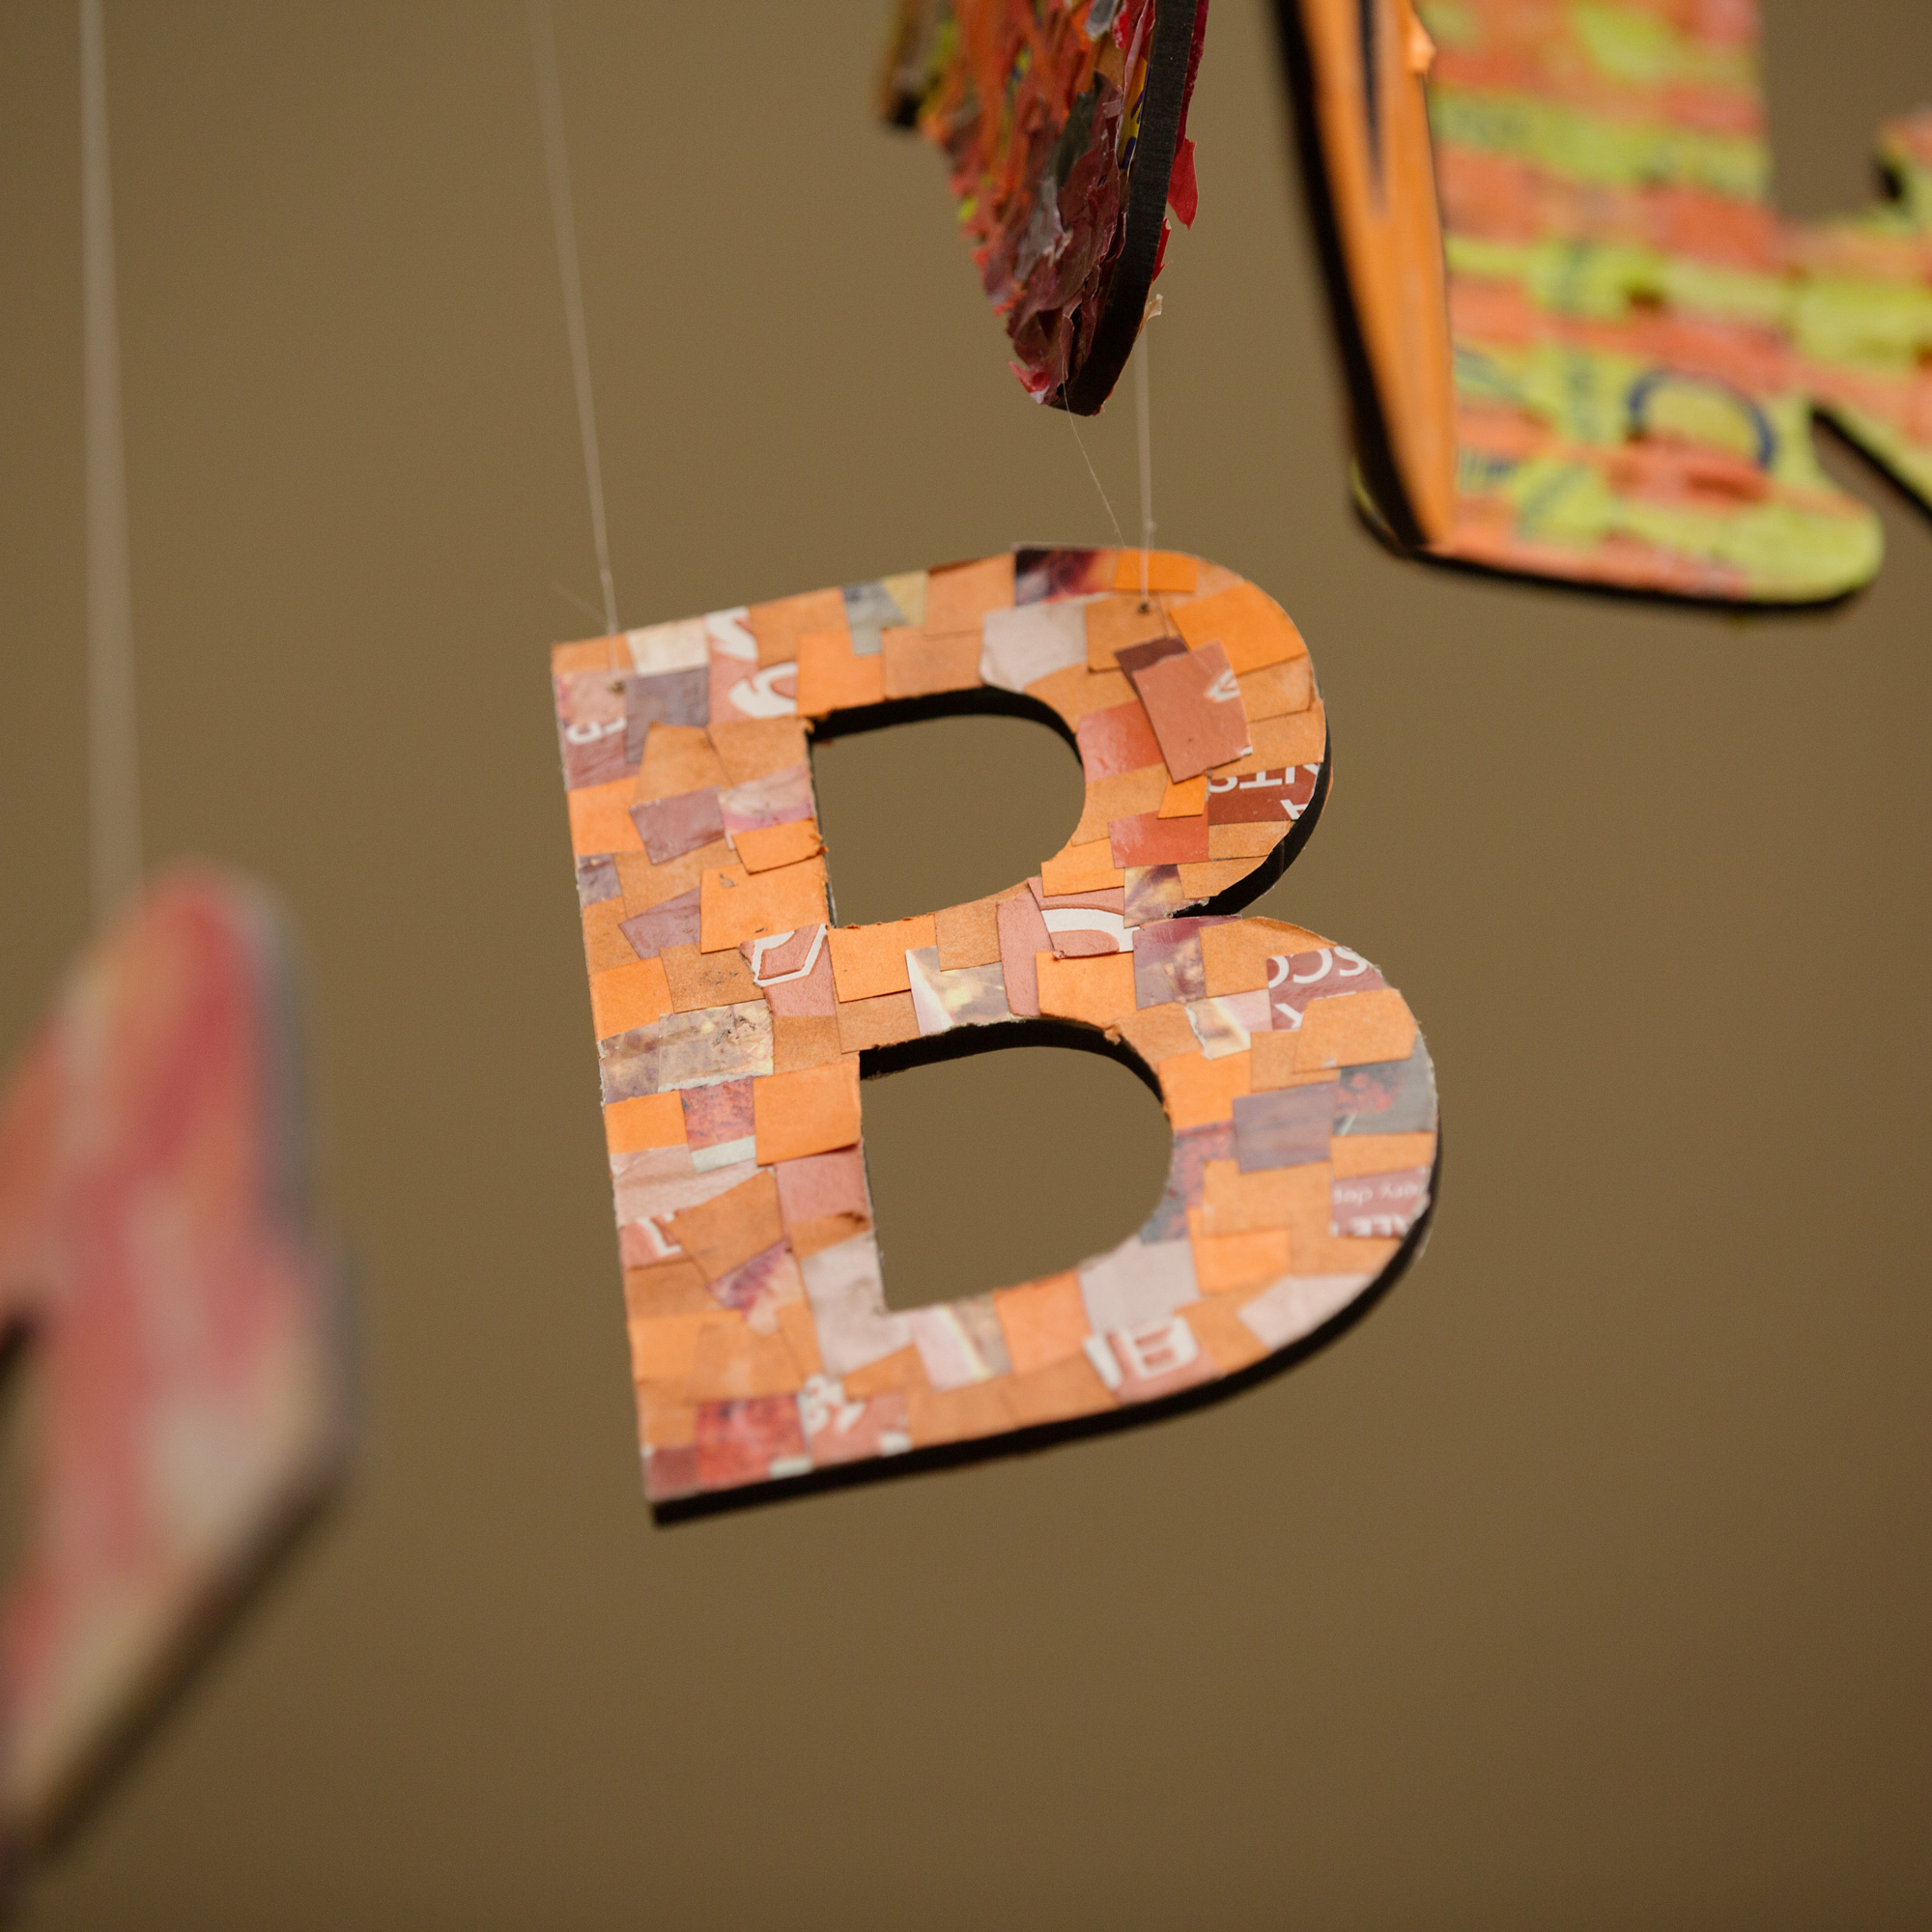 Letter B in art display made from woven plastics